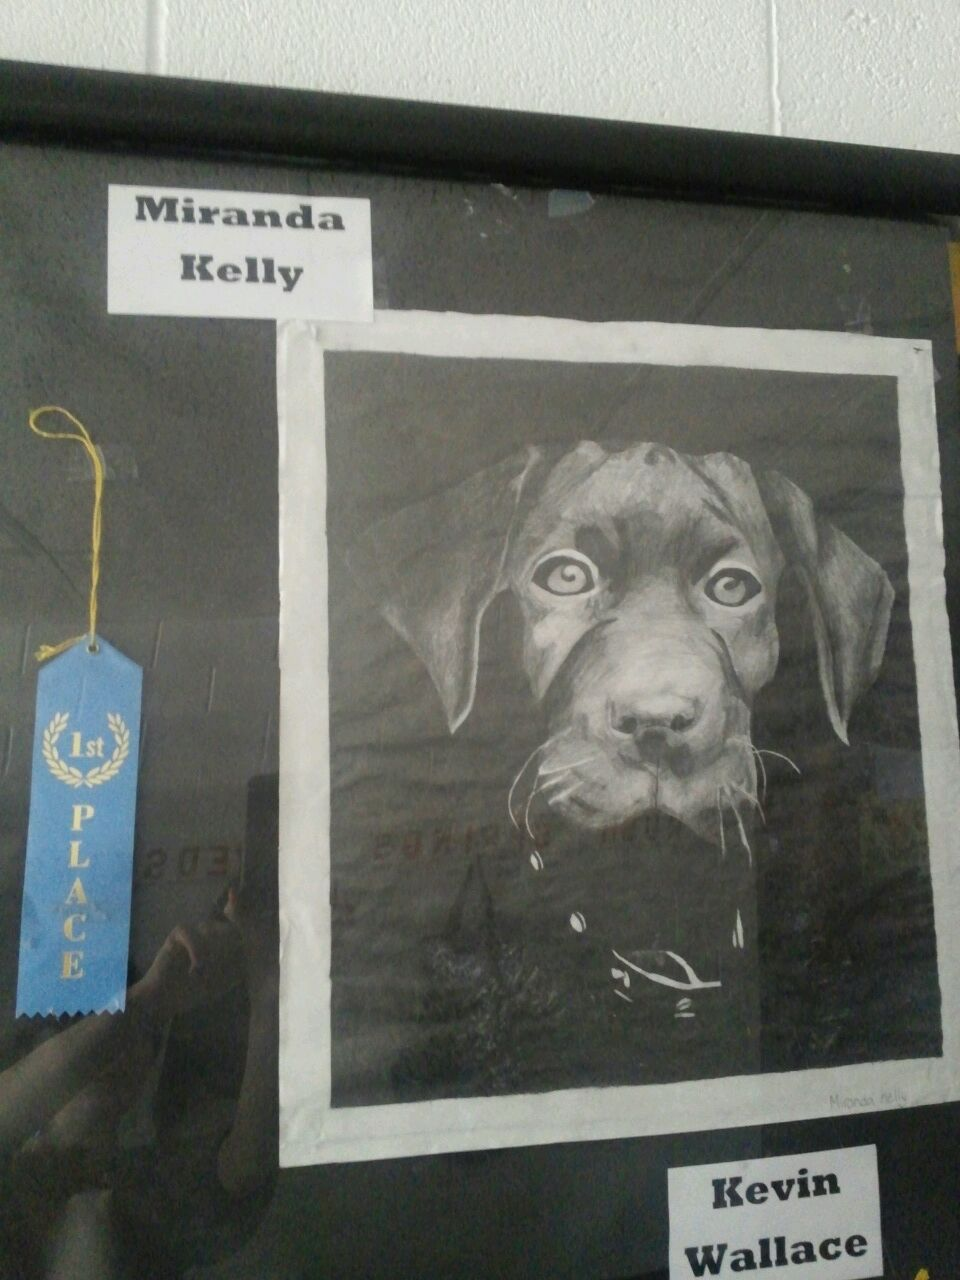 Miranda Kelly - 1st place Rock Island Arts Festival